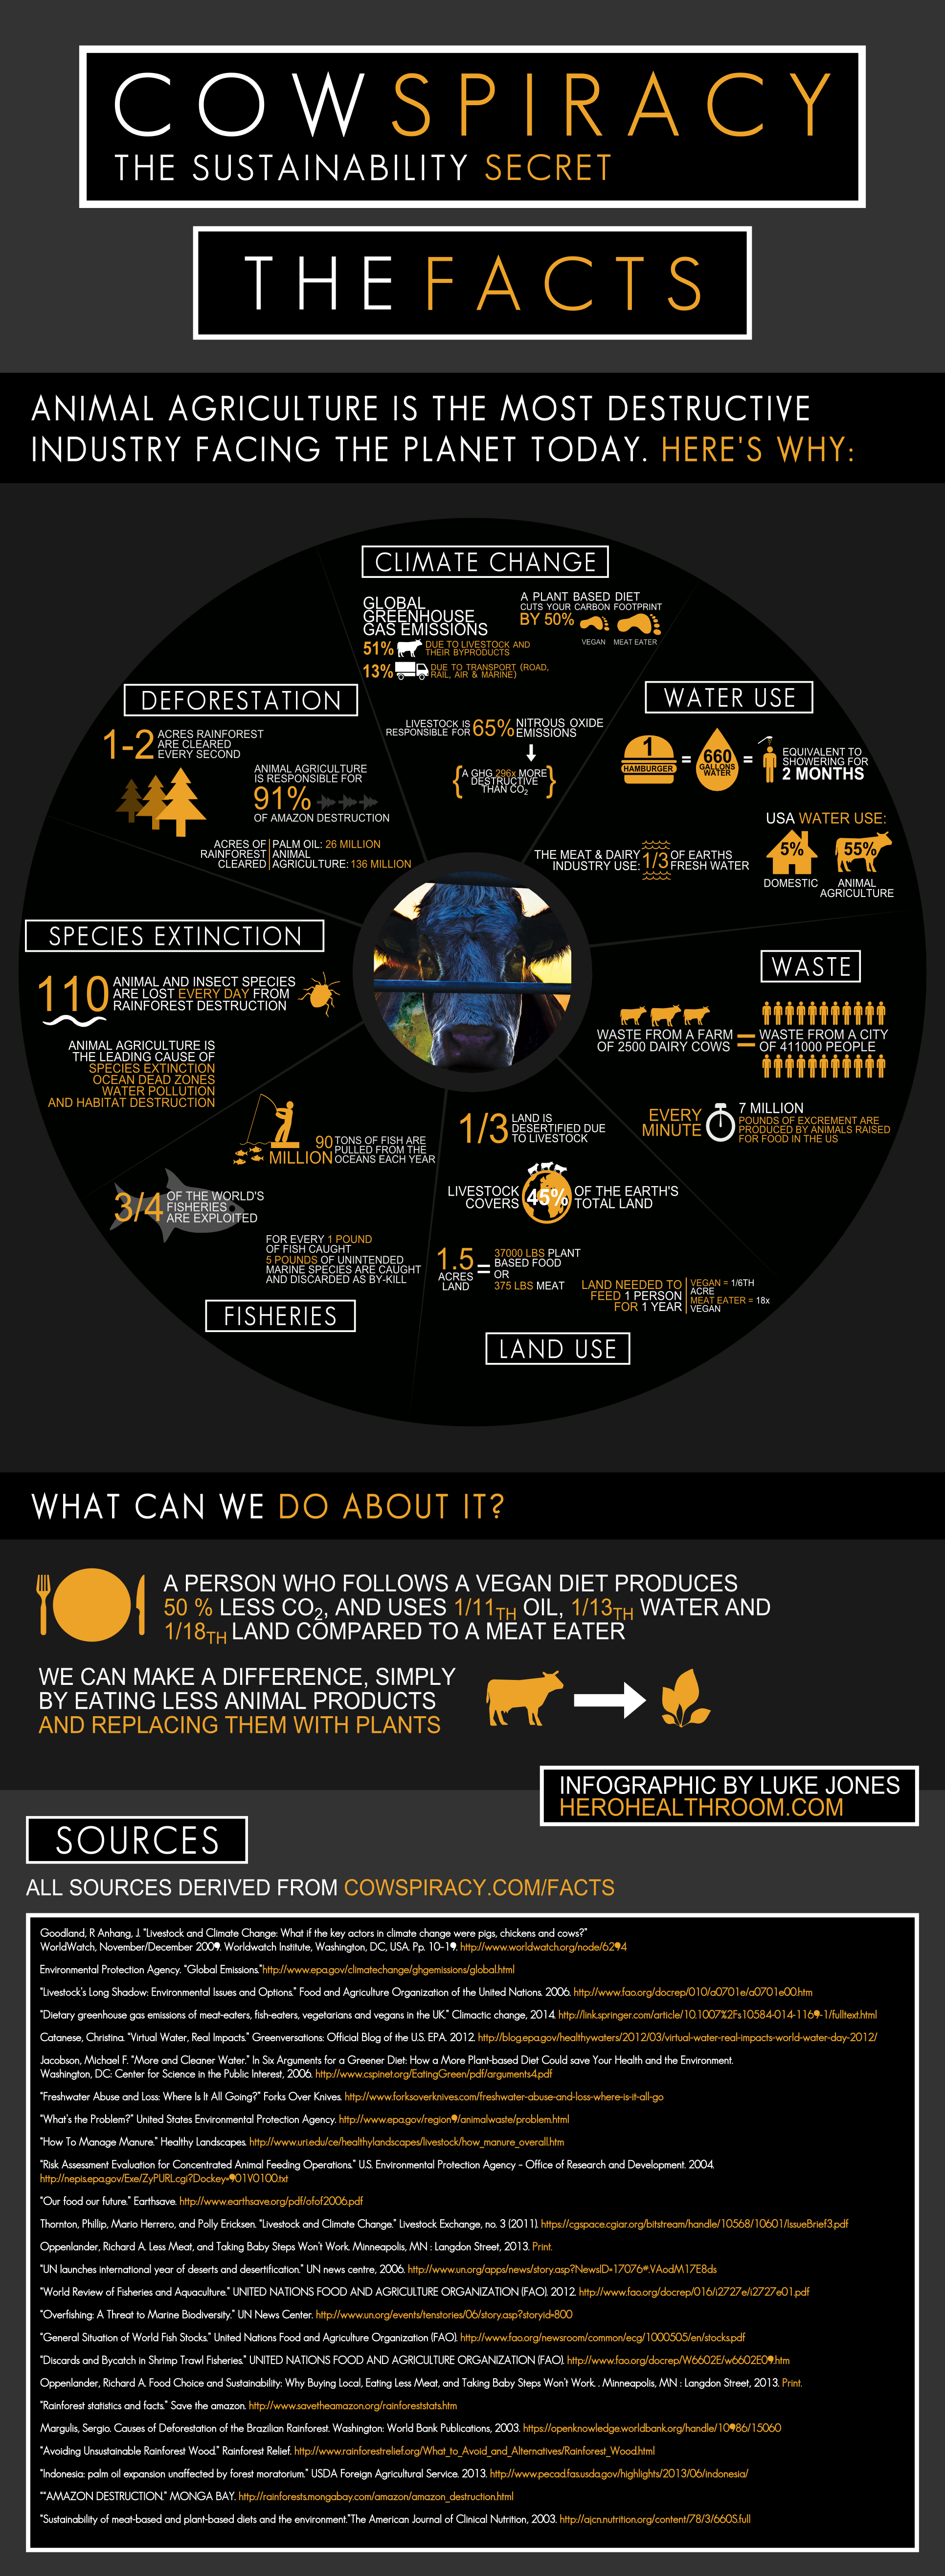 Cowspiracy infographic